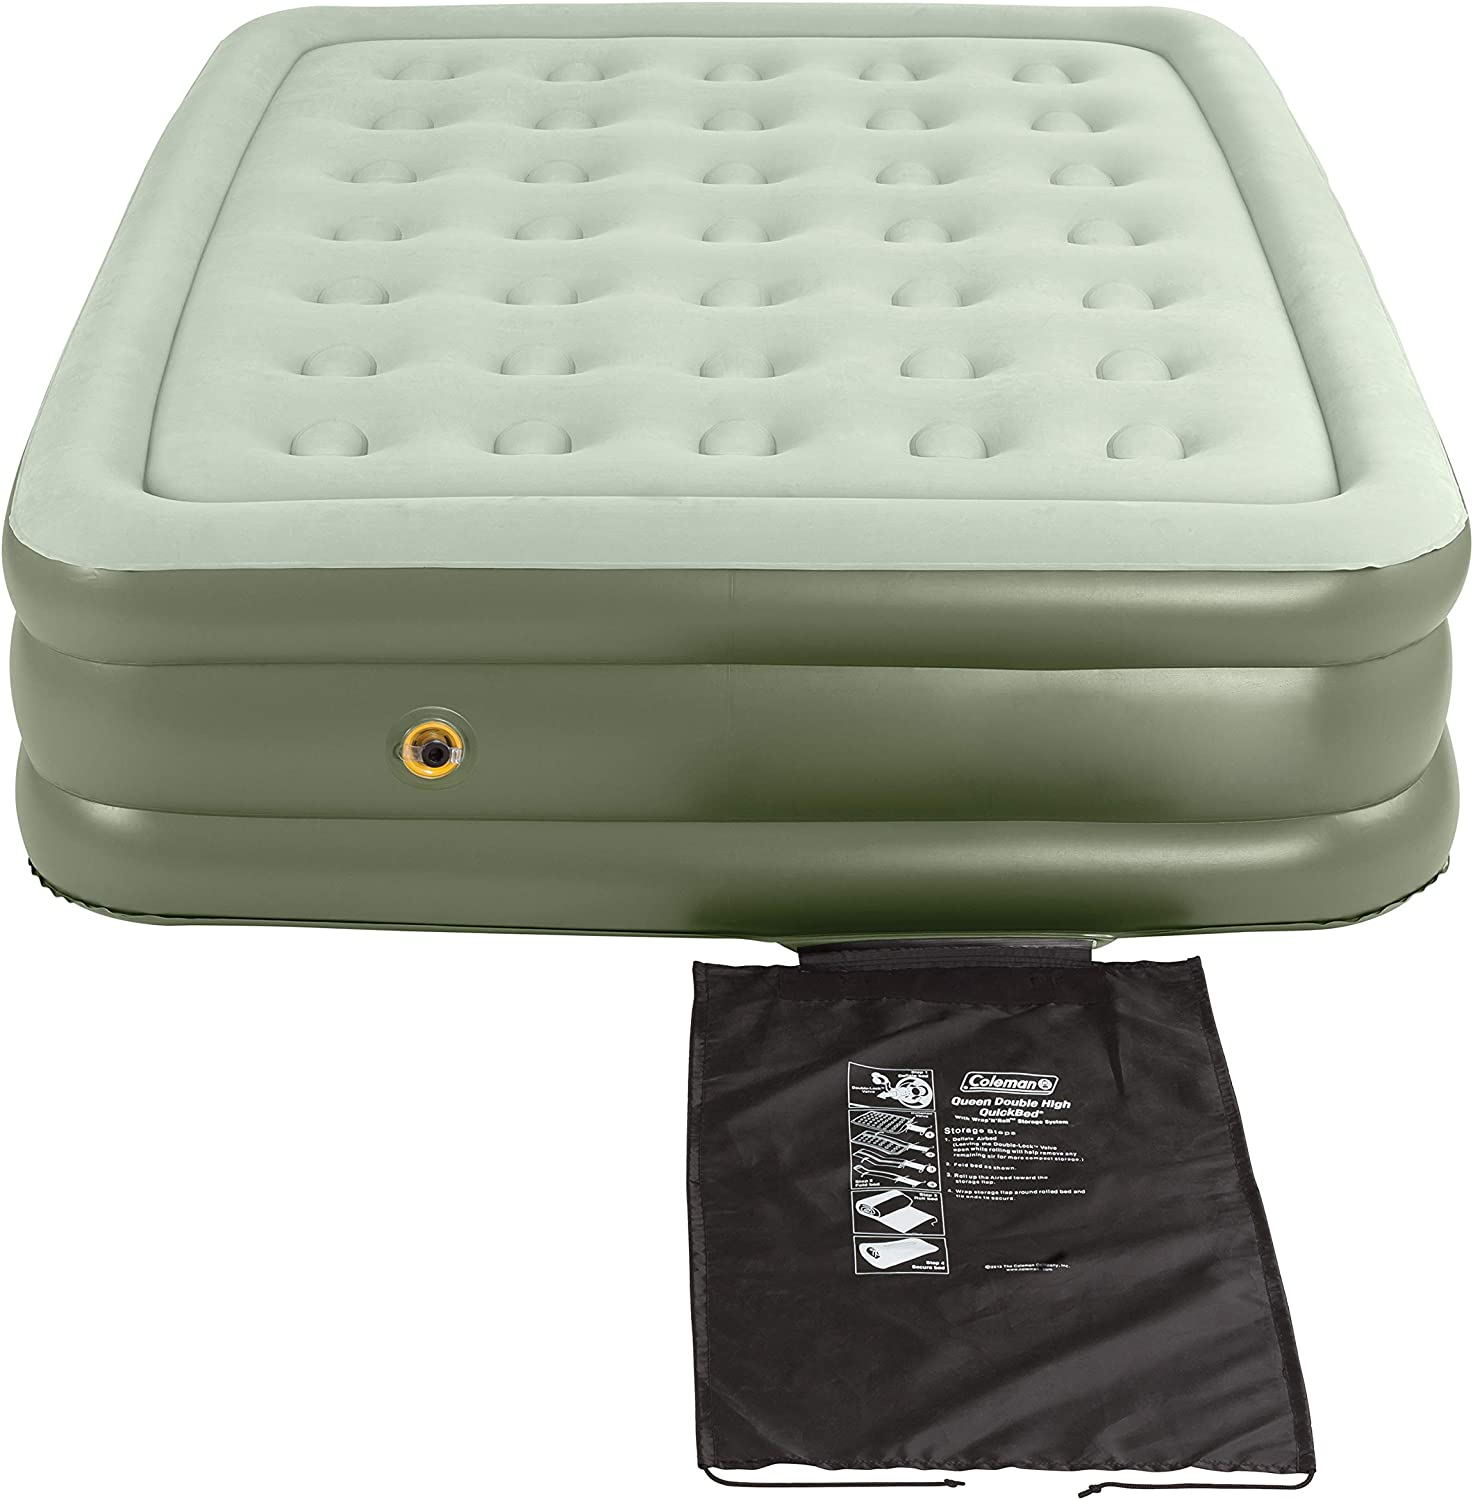 Coleman Air Mattress | Double-High SupportRest Air Bed for Indoor or Outdoor Use, Queen: Sports & Outdoors